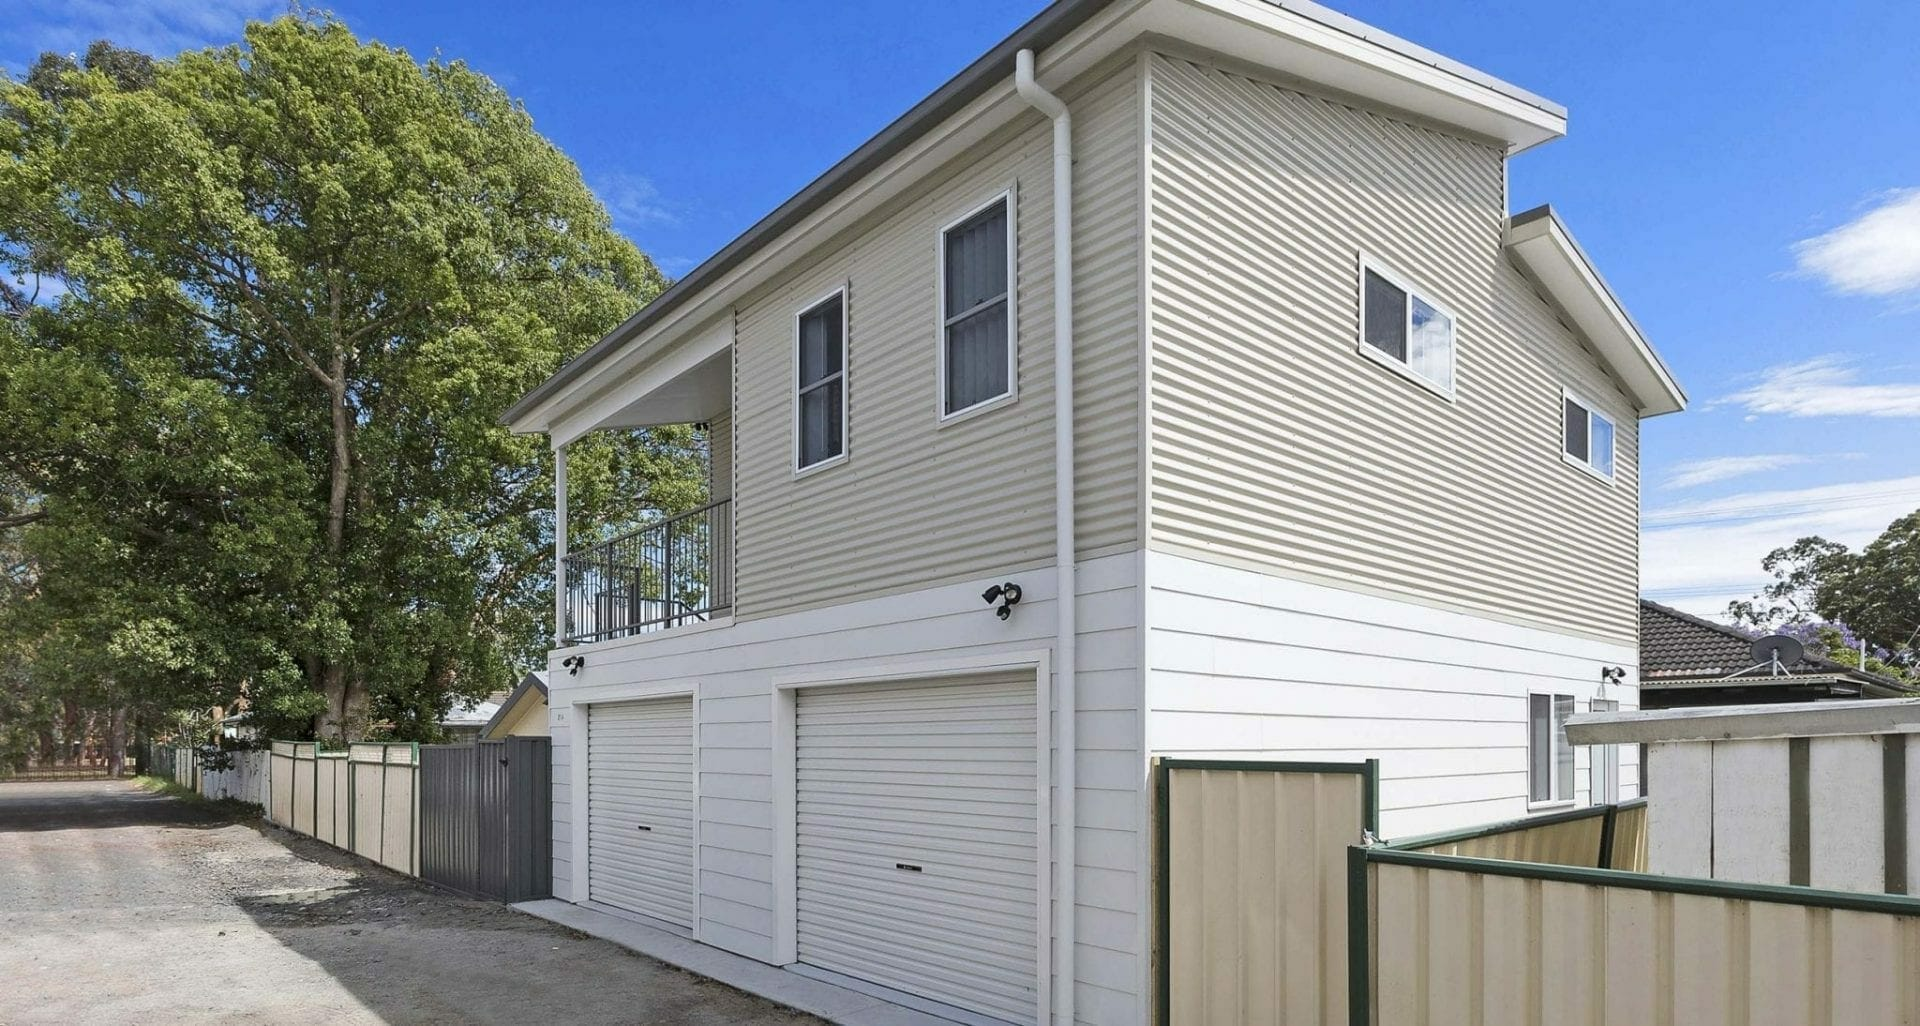 Two storey granny flat – Backyard Grannys